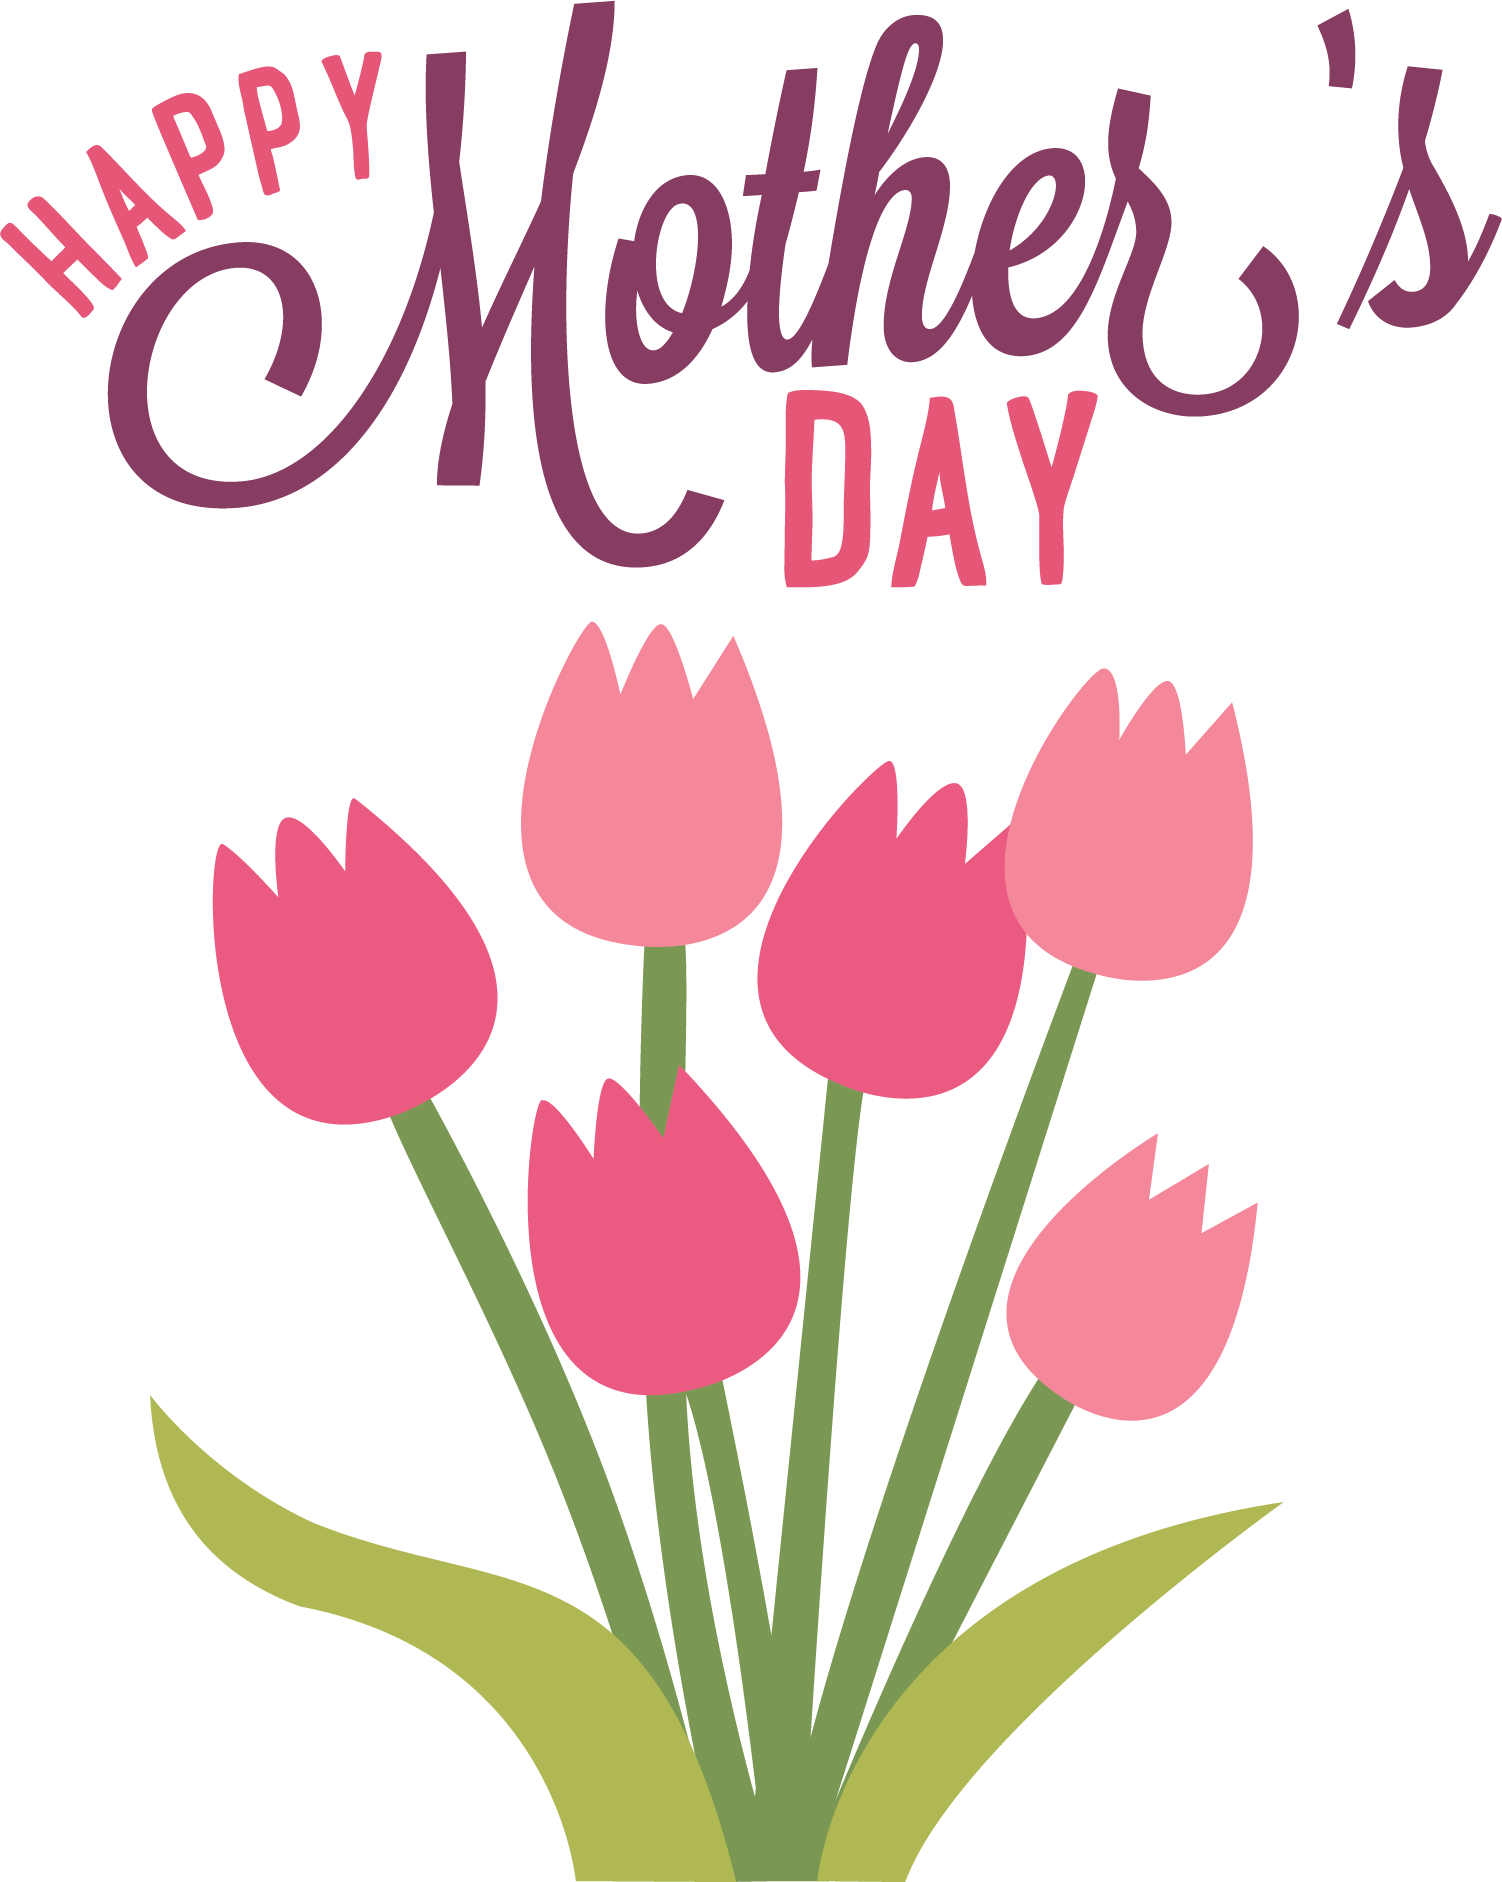 Mothers Day Hd Png Transparent Mothers Day Hd Png Images Pluspng